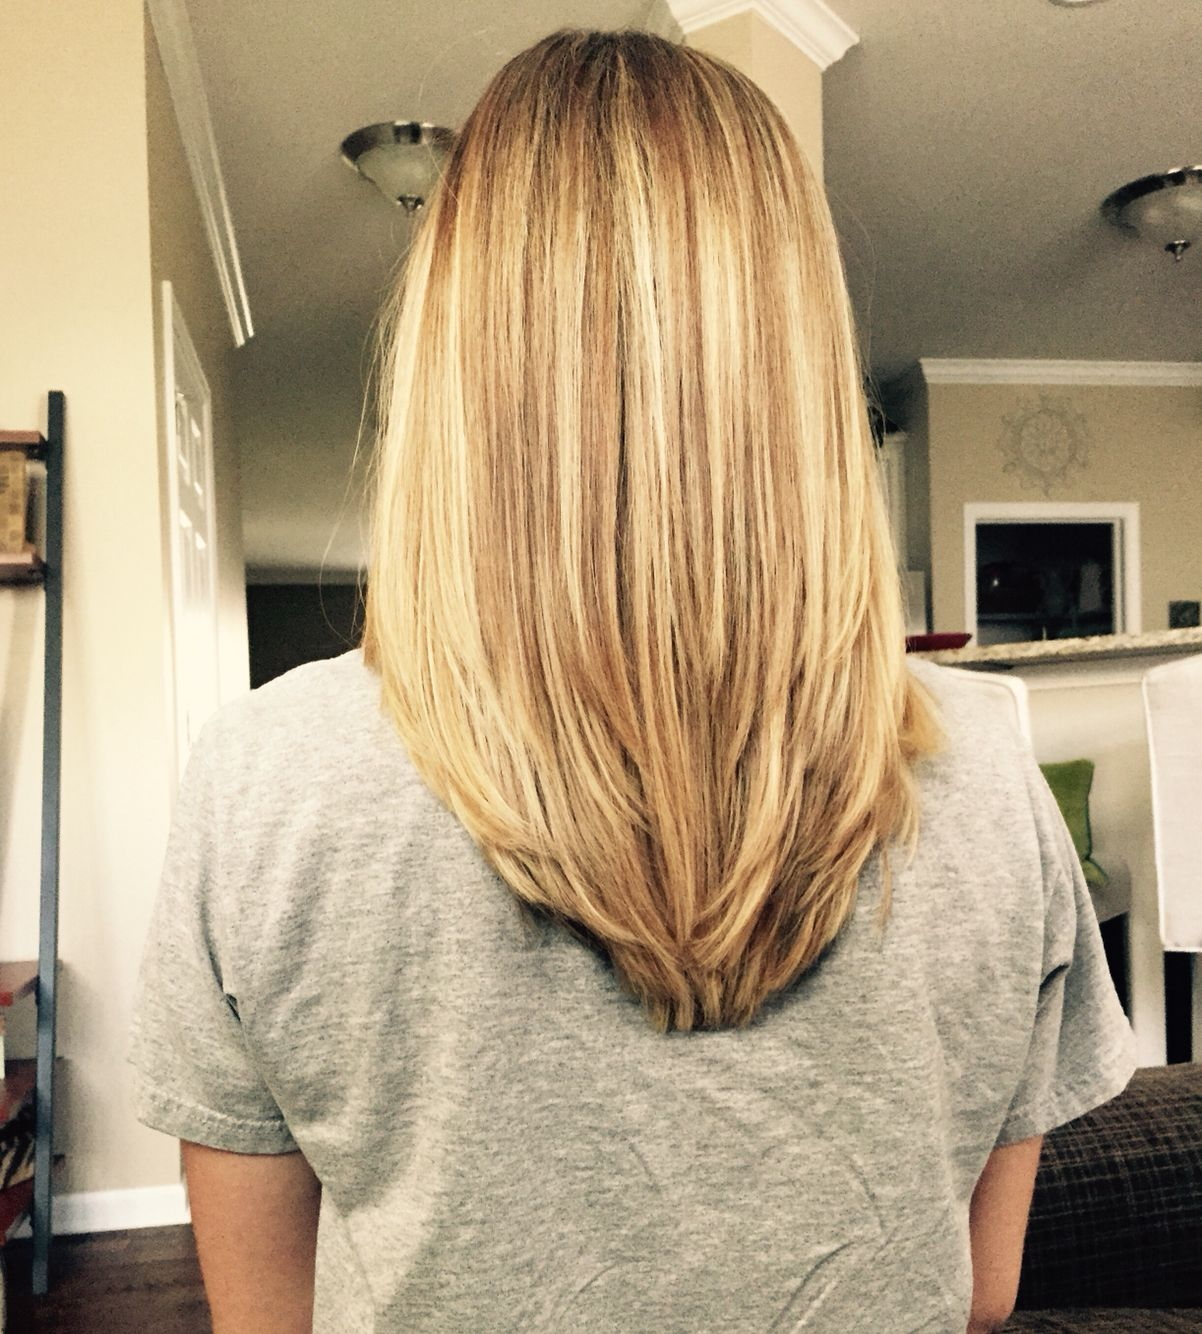 V Shape In The Back With Some Long Layers My New Hair Style Very Good For My Thick Hair Hair Styles Thick Hair Styles Long Hair Styles